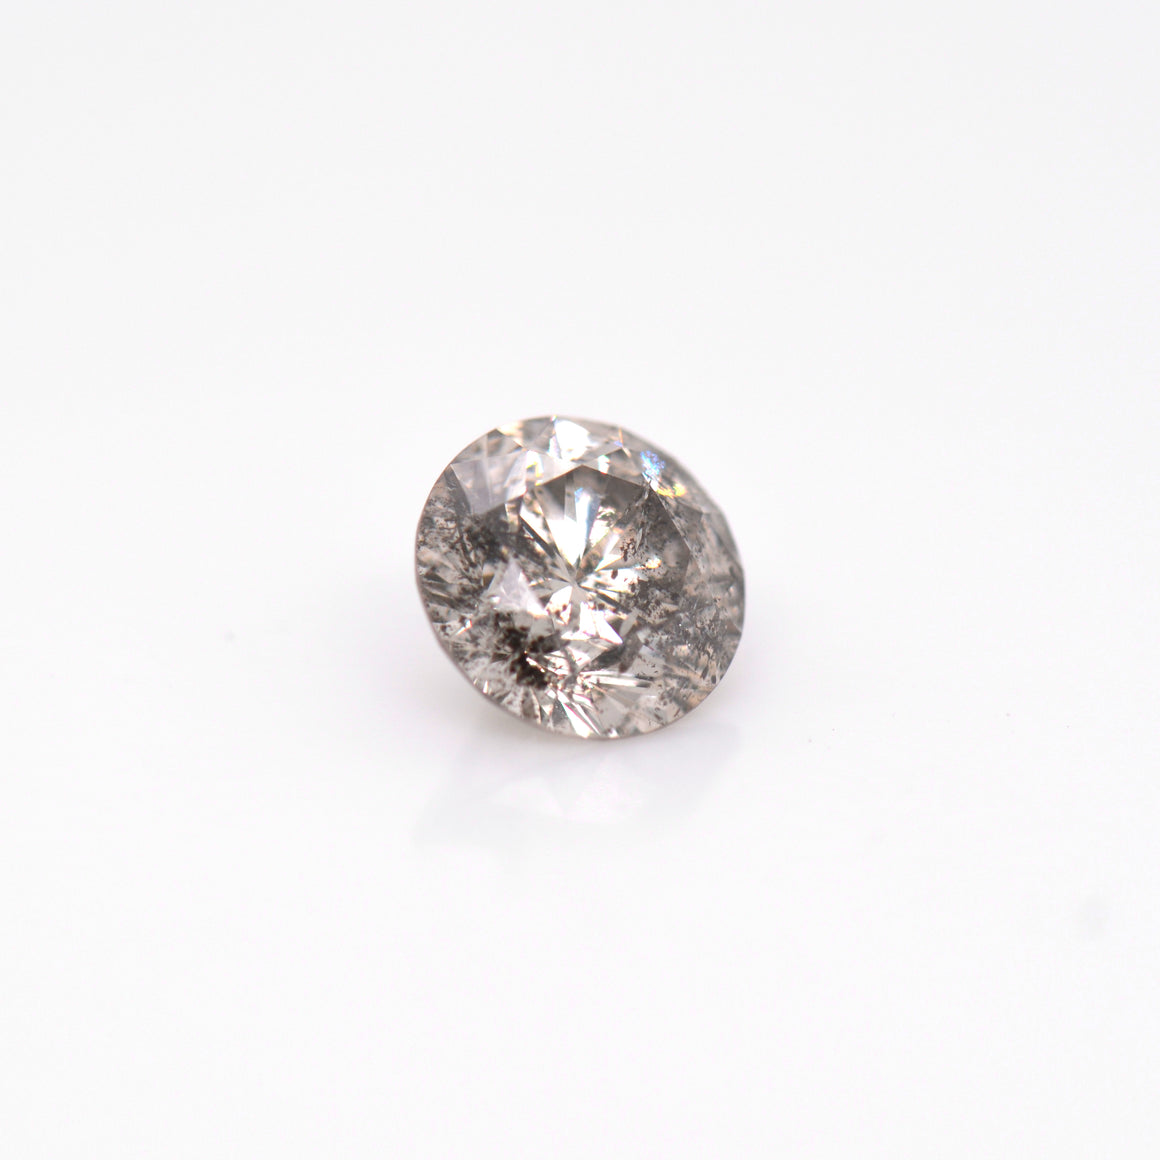 1.33 Carat Salt & Pepper Grey Diamond